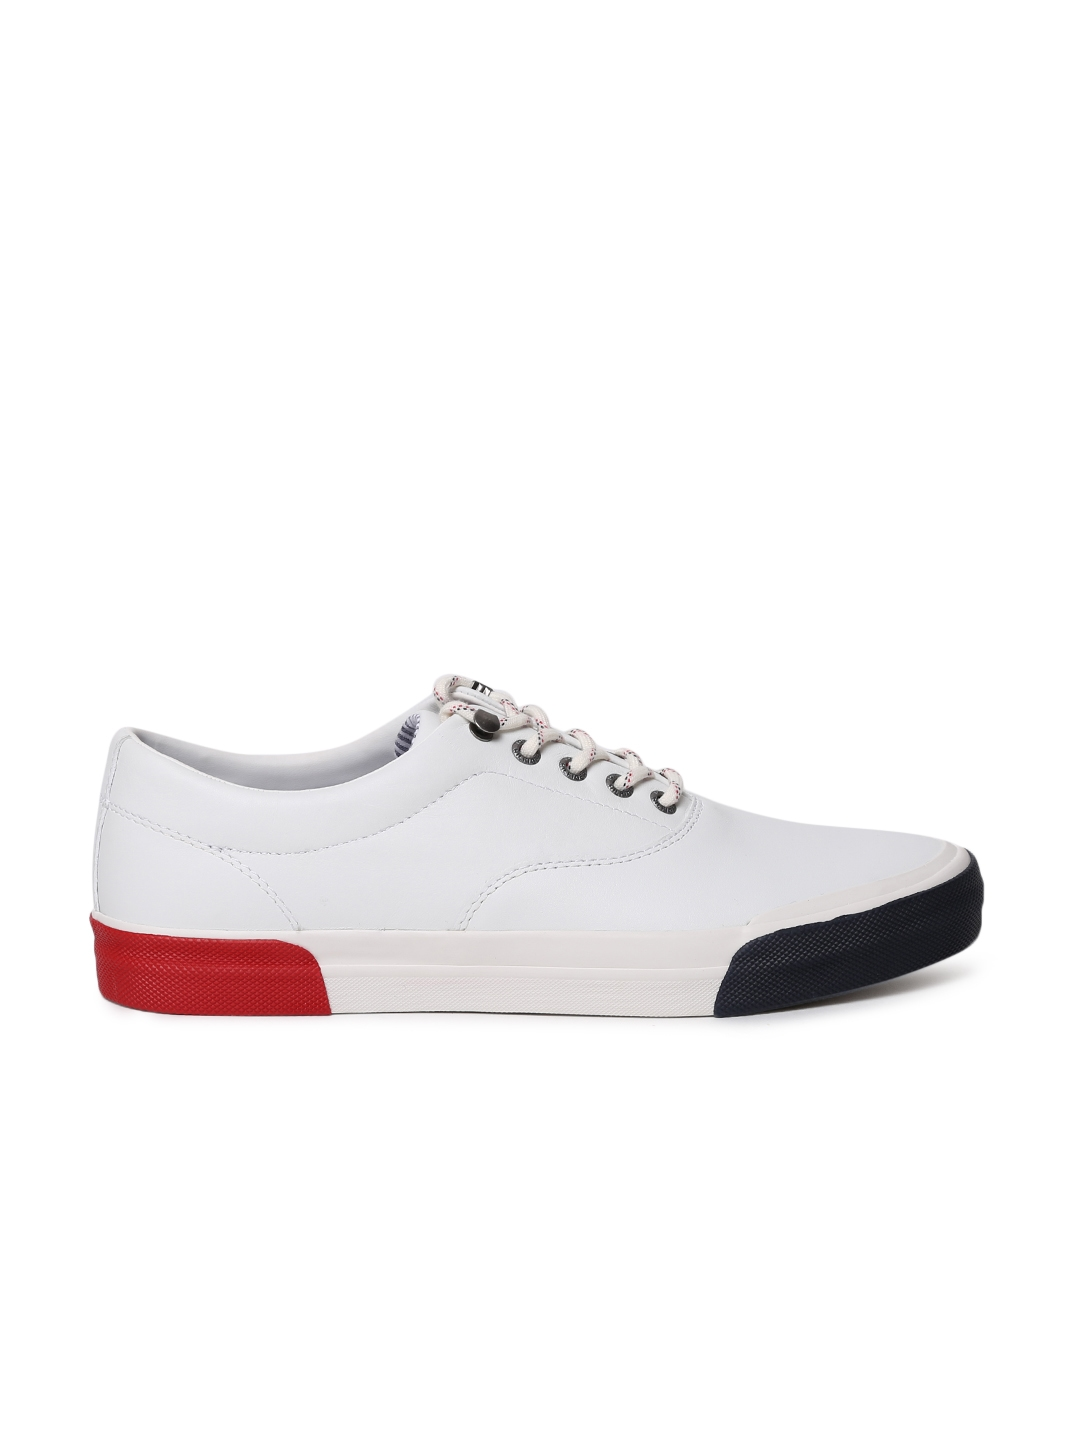 34675fb88 Buy Tommy Hilfiger Men White Sneakers - Casual Shoes for Men 2003073 ...